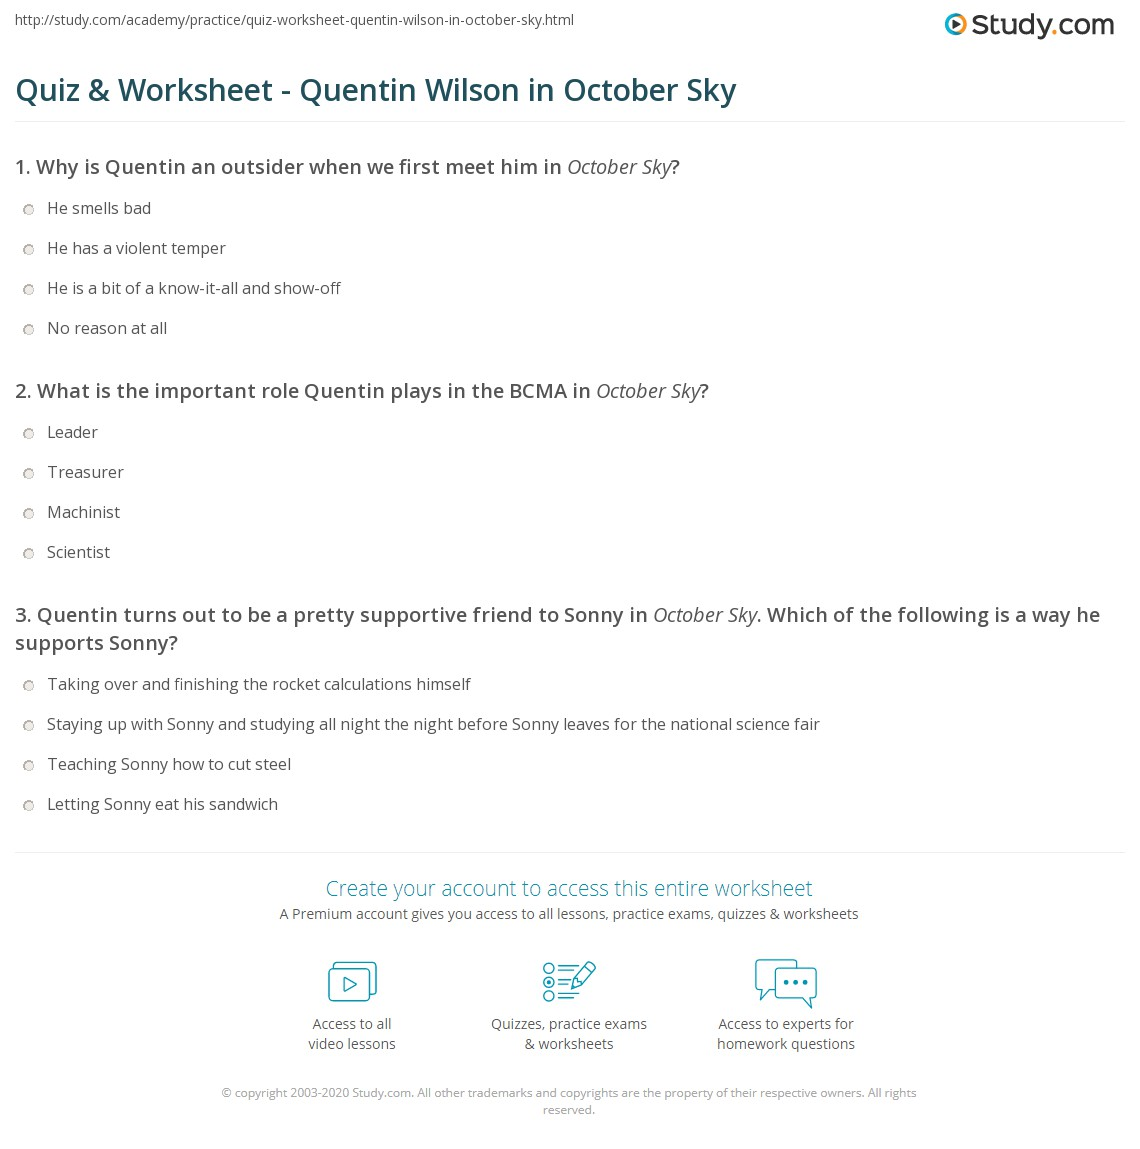 quiz worksheet quentin wilson in october sky. Black Bedroom Furniture Sets. Home Design Ideas